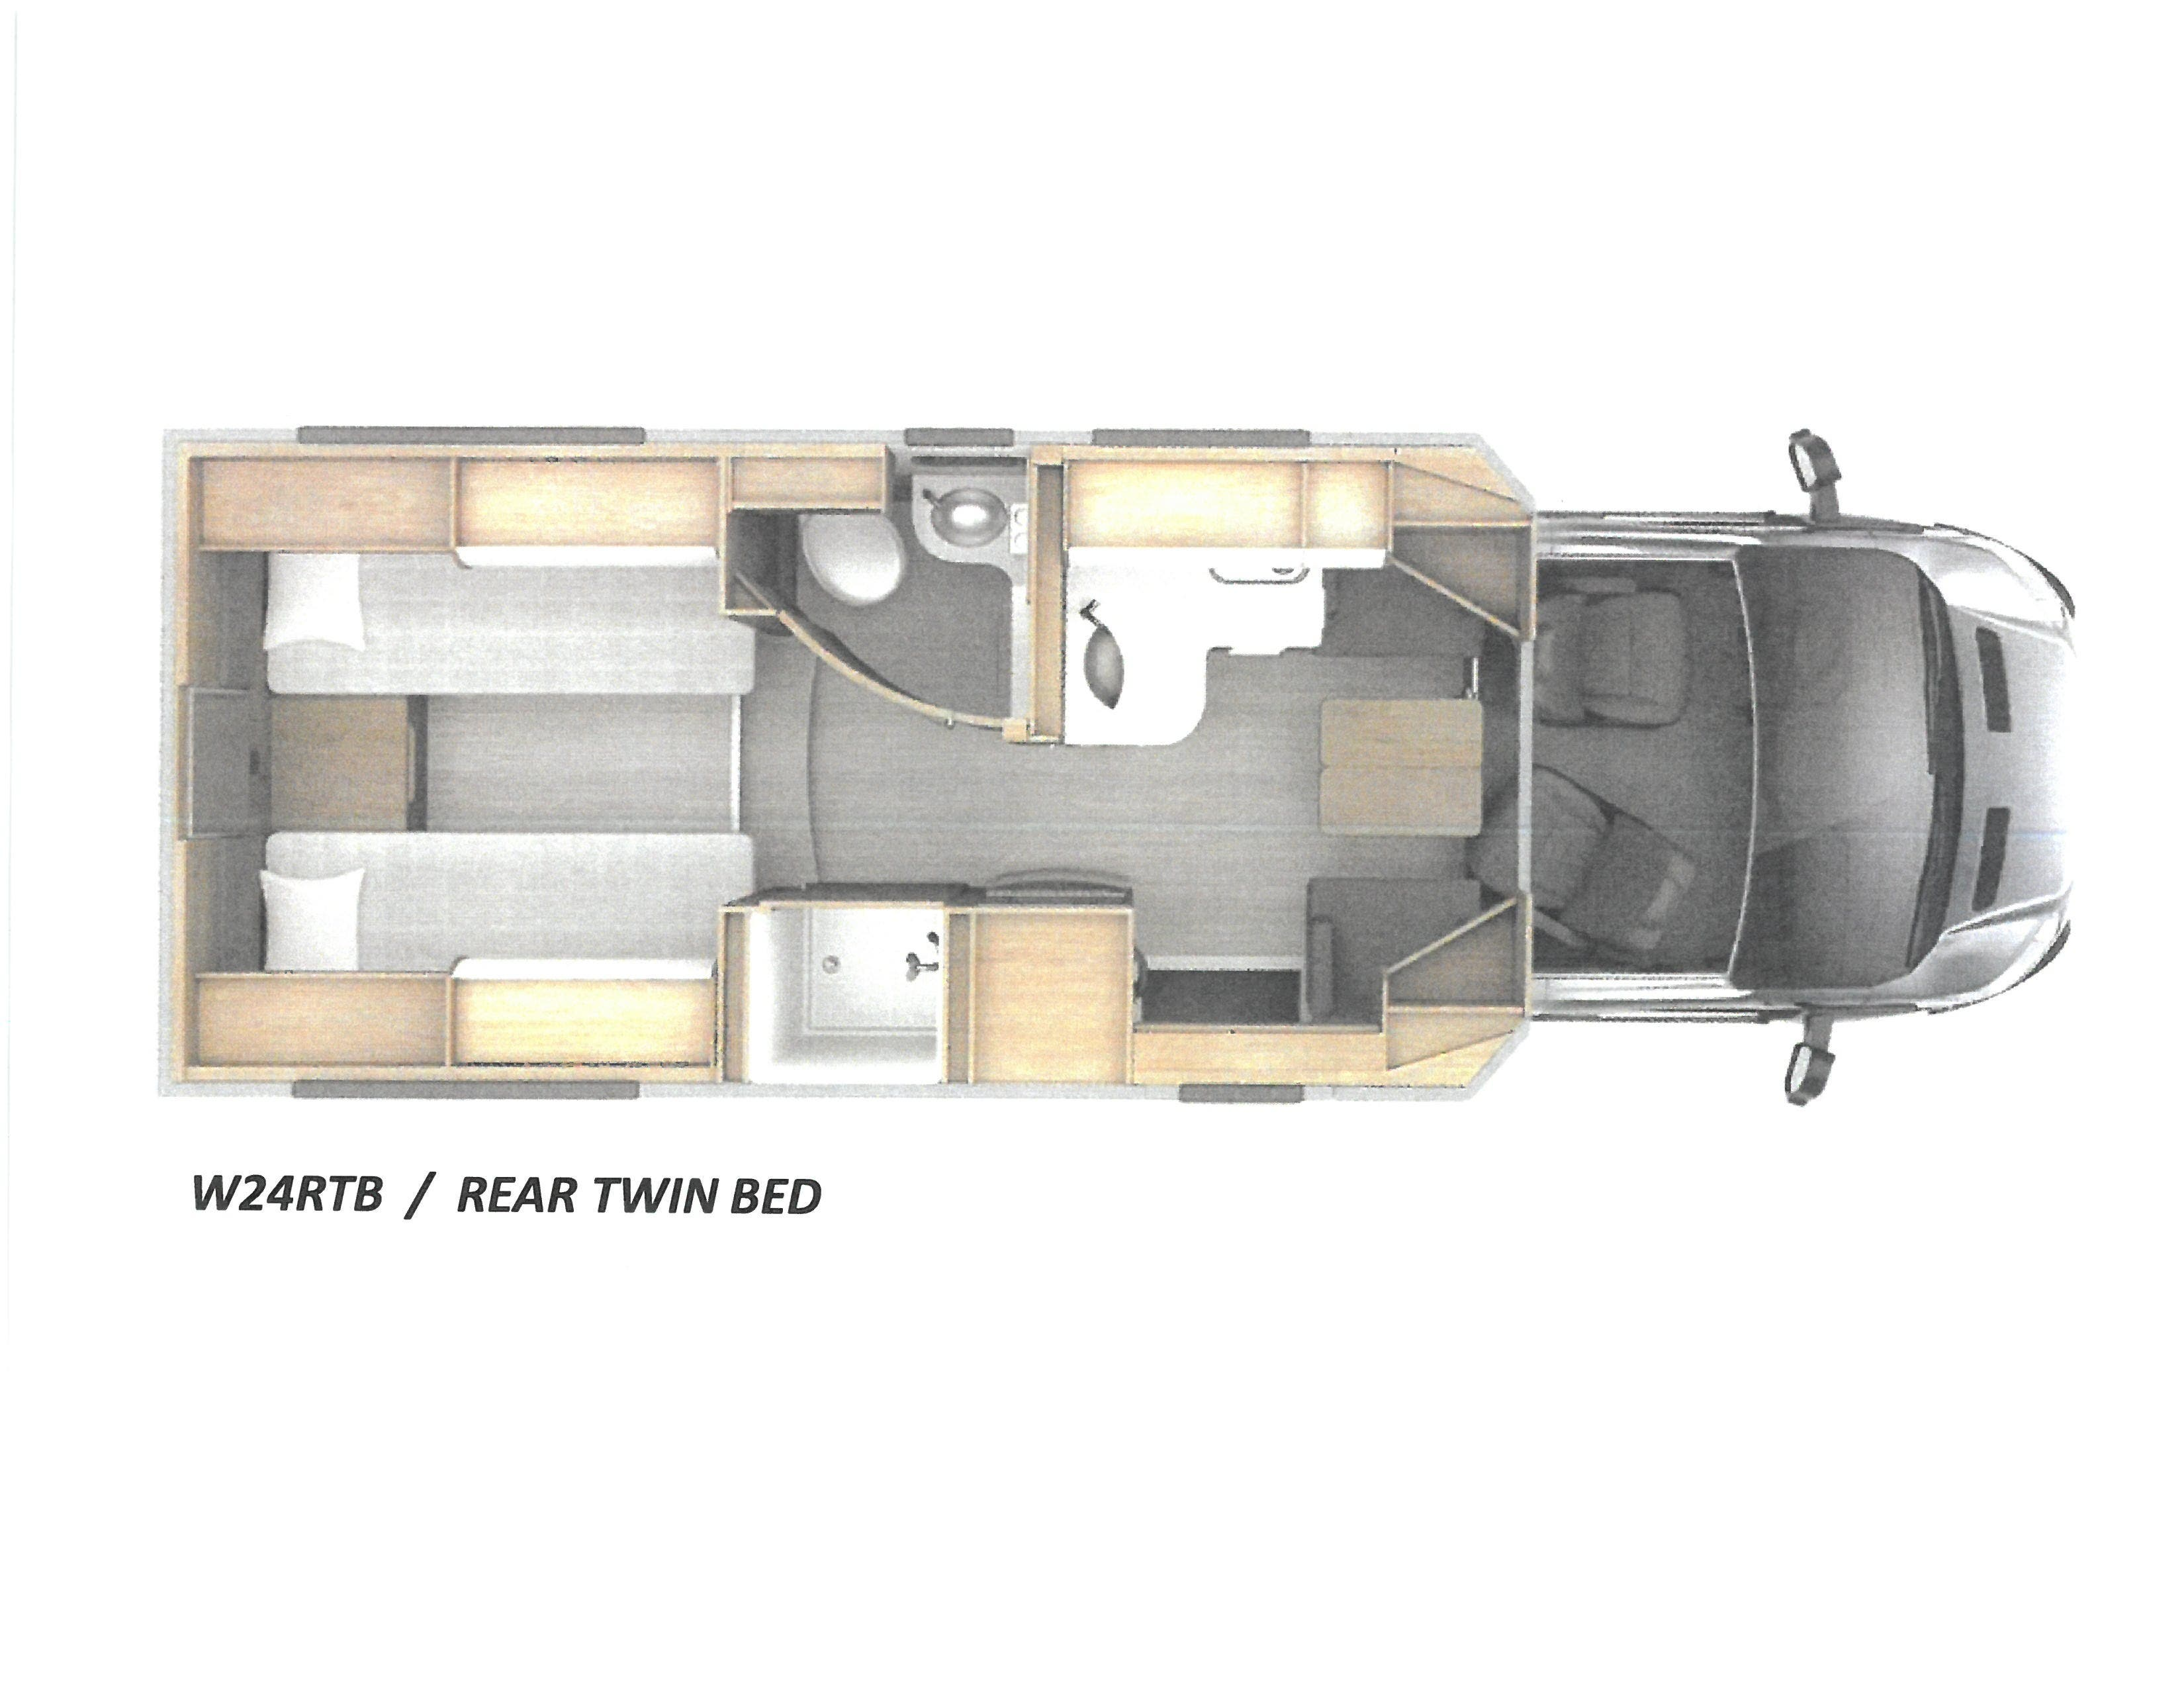 2021 Leisure Travel Vans Wonder 24RTB AWD Thumbnail